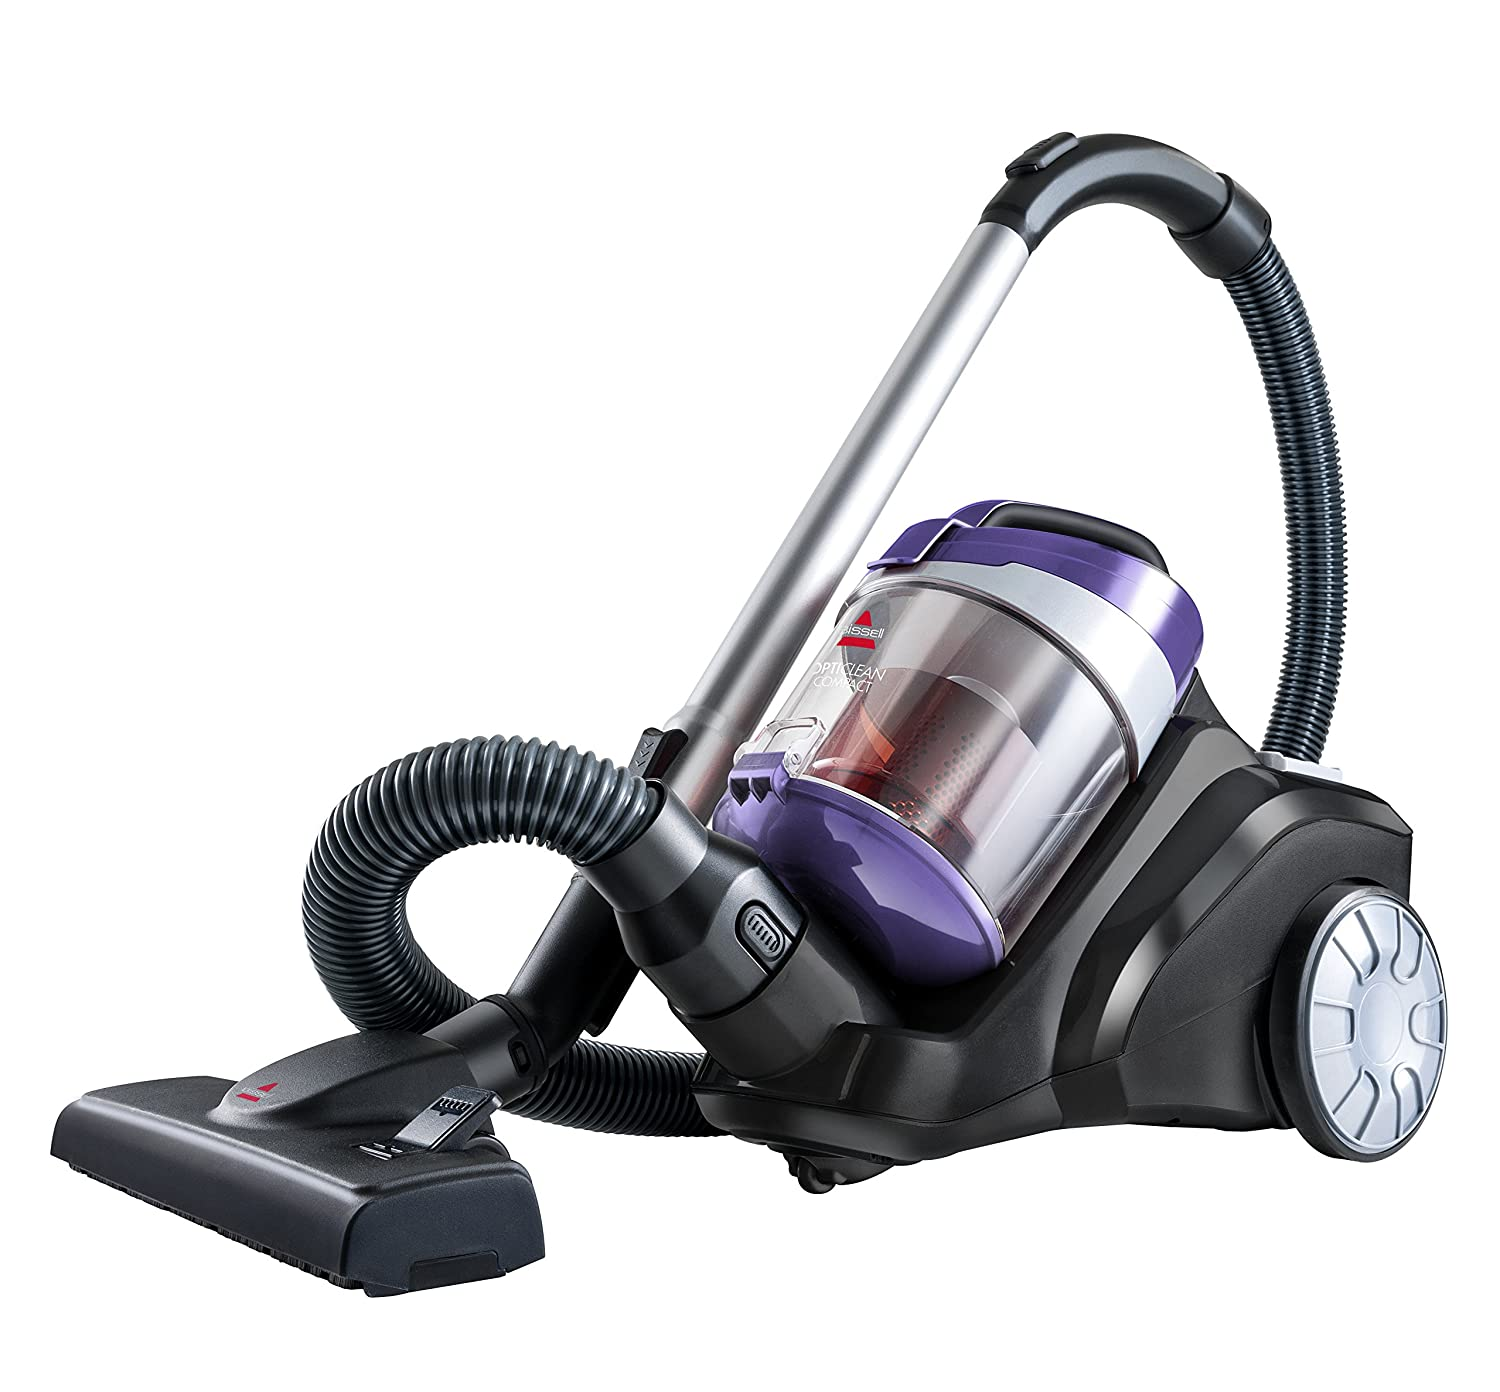 Bissell 1535 Opticlean Compact Canister Vacuum